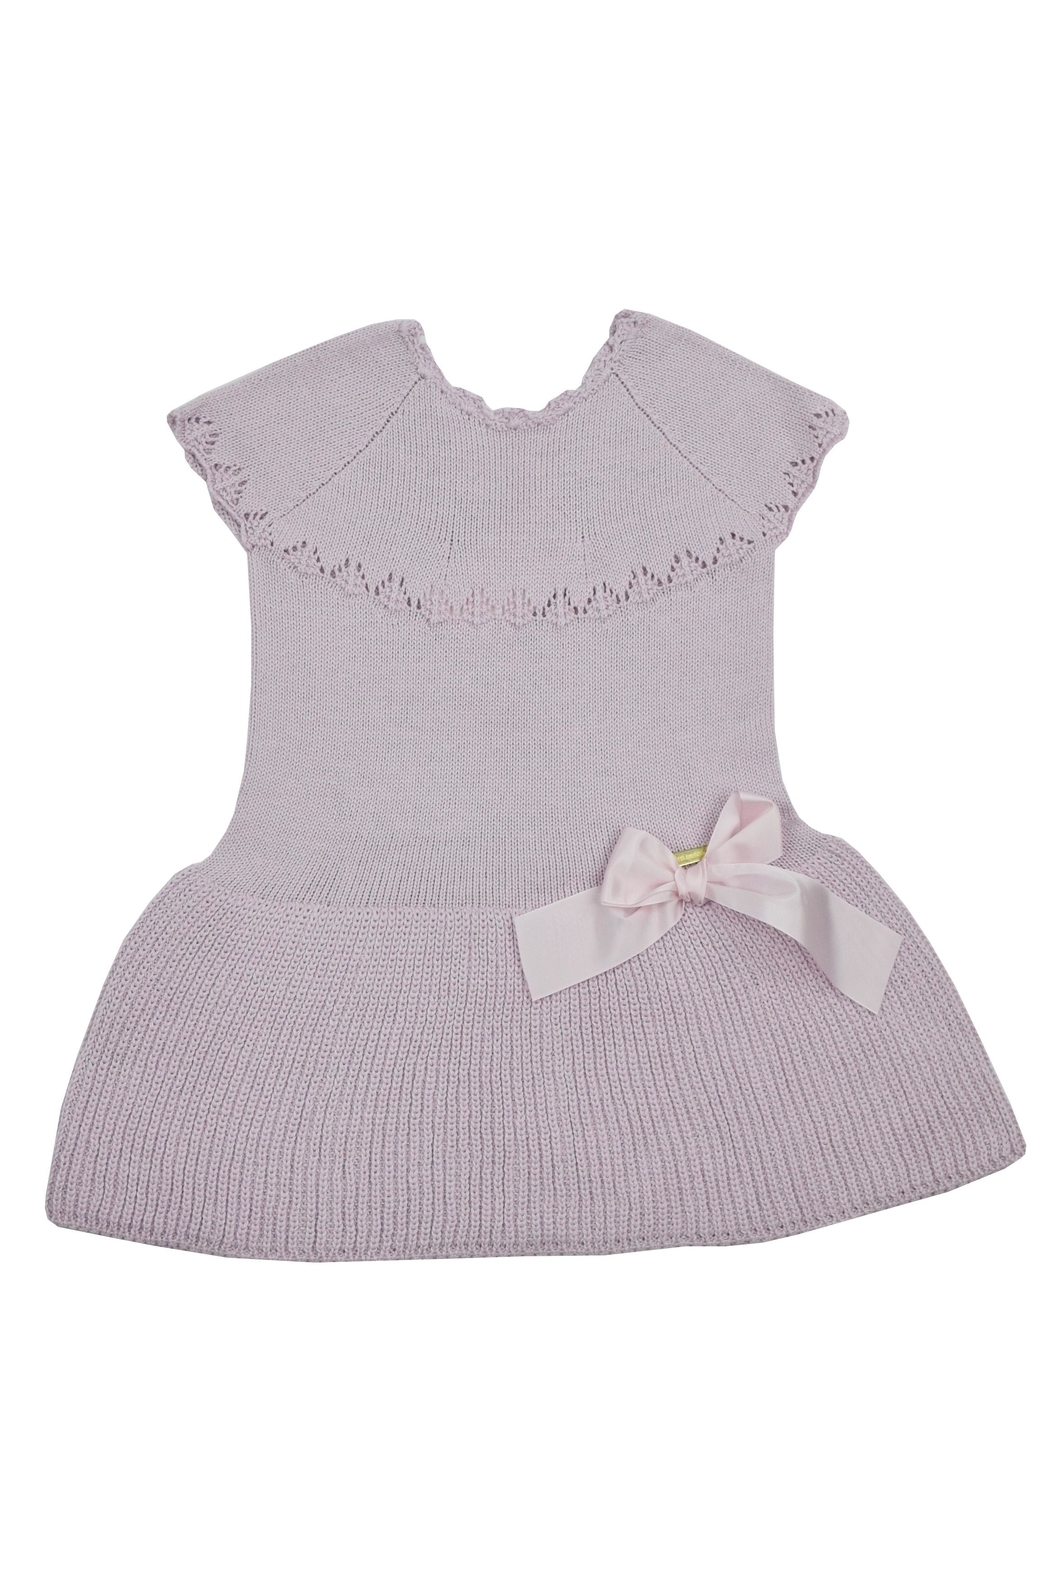 cesar blanco Lilac Knitted Dress - Front Cropped Image